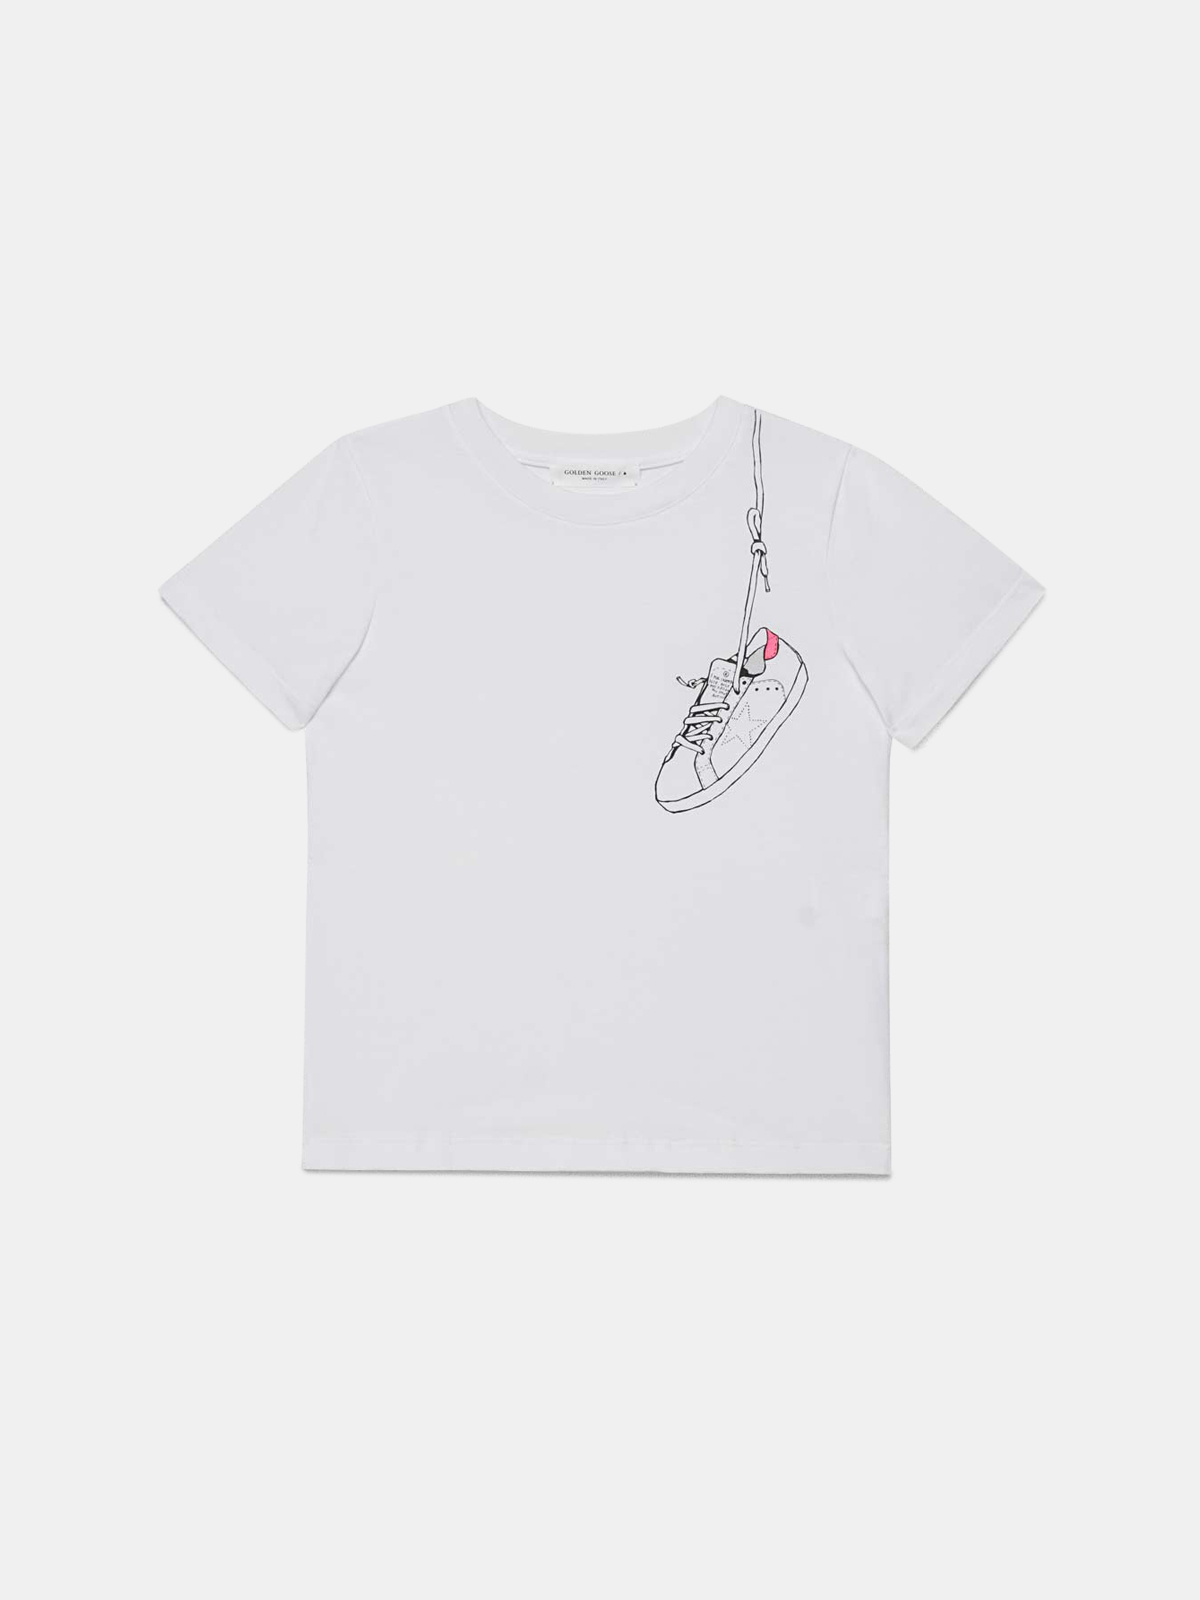 Golden Goose - T-shirt Venice bianca con stampa sneakers fucsia in